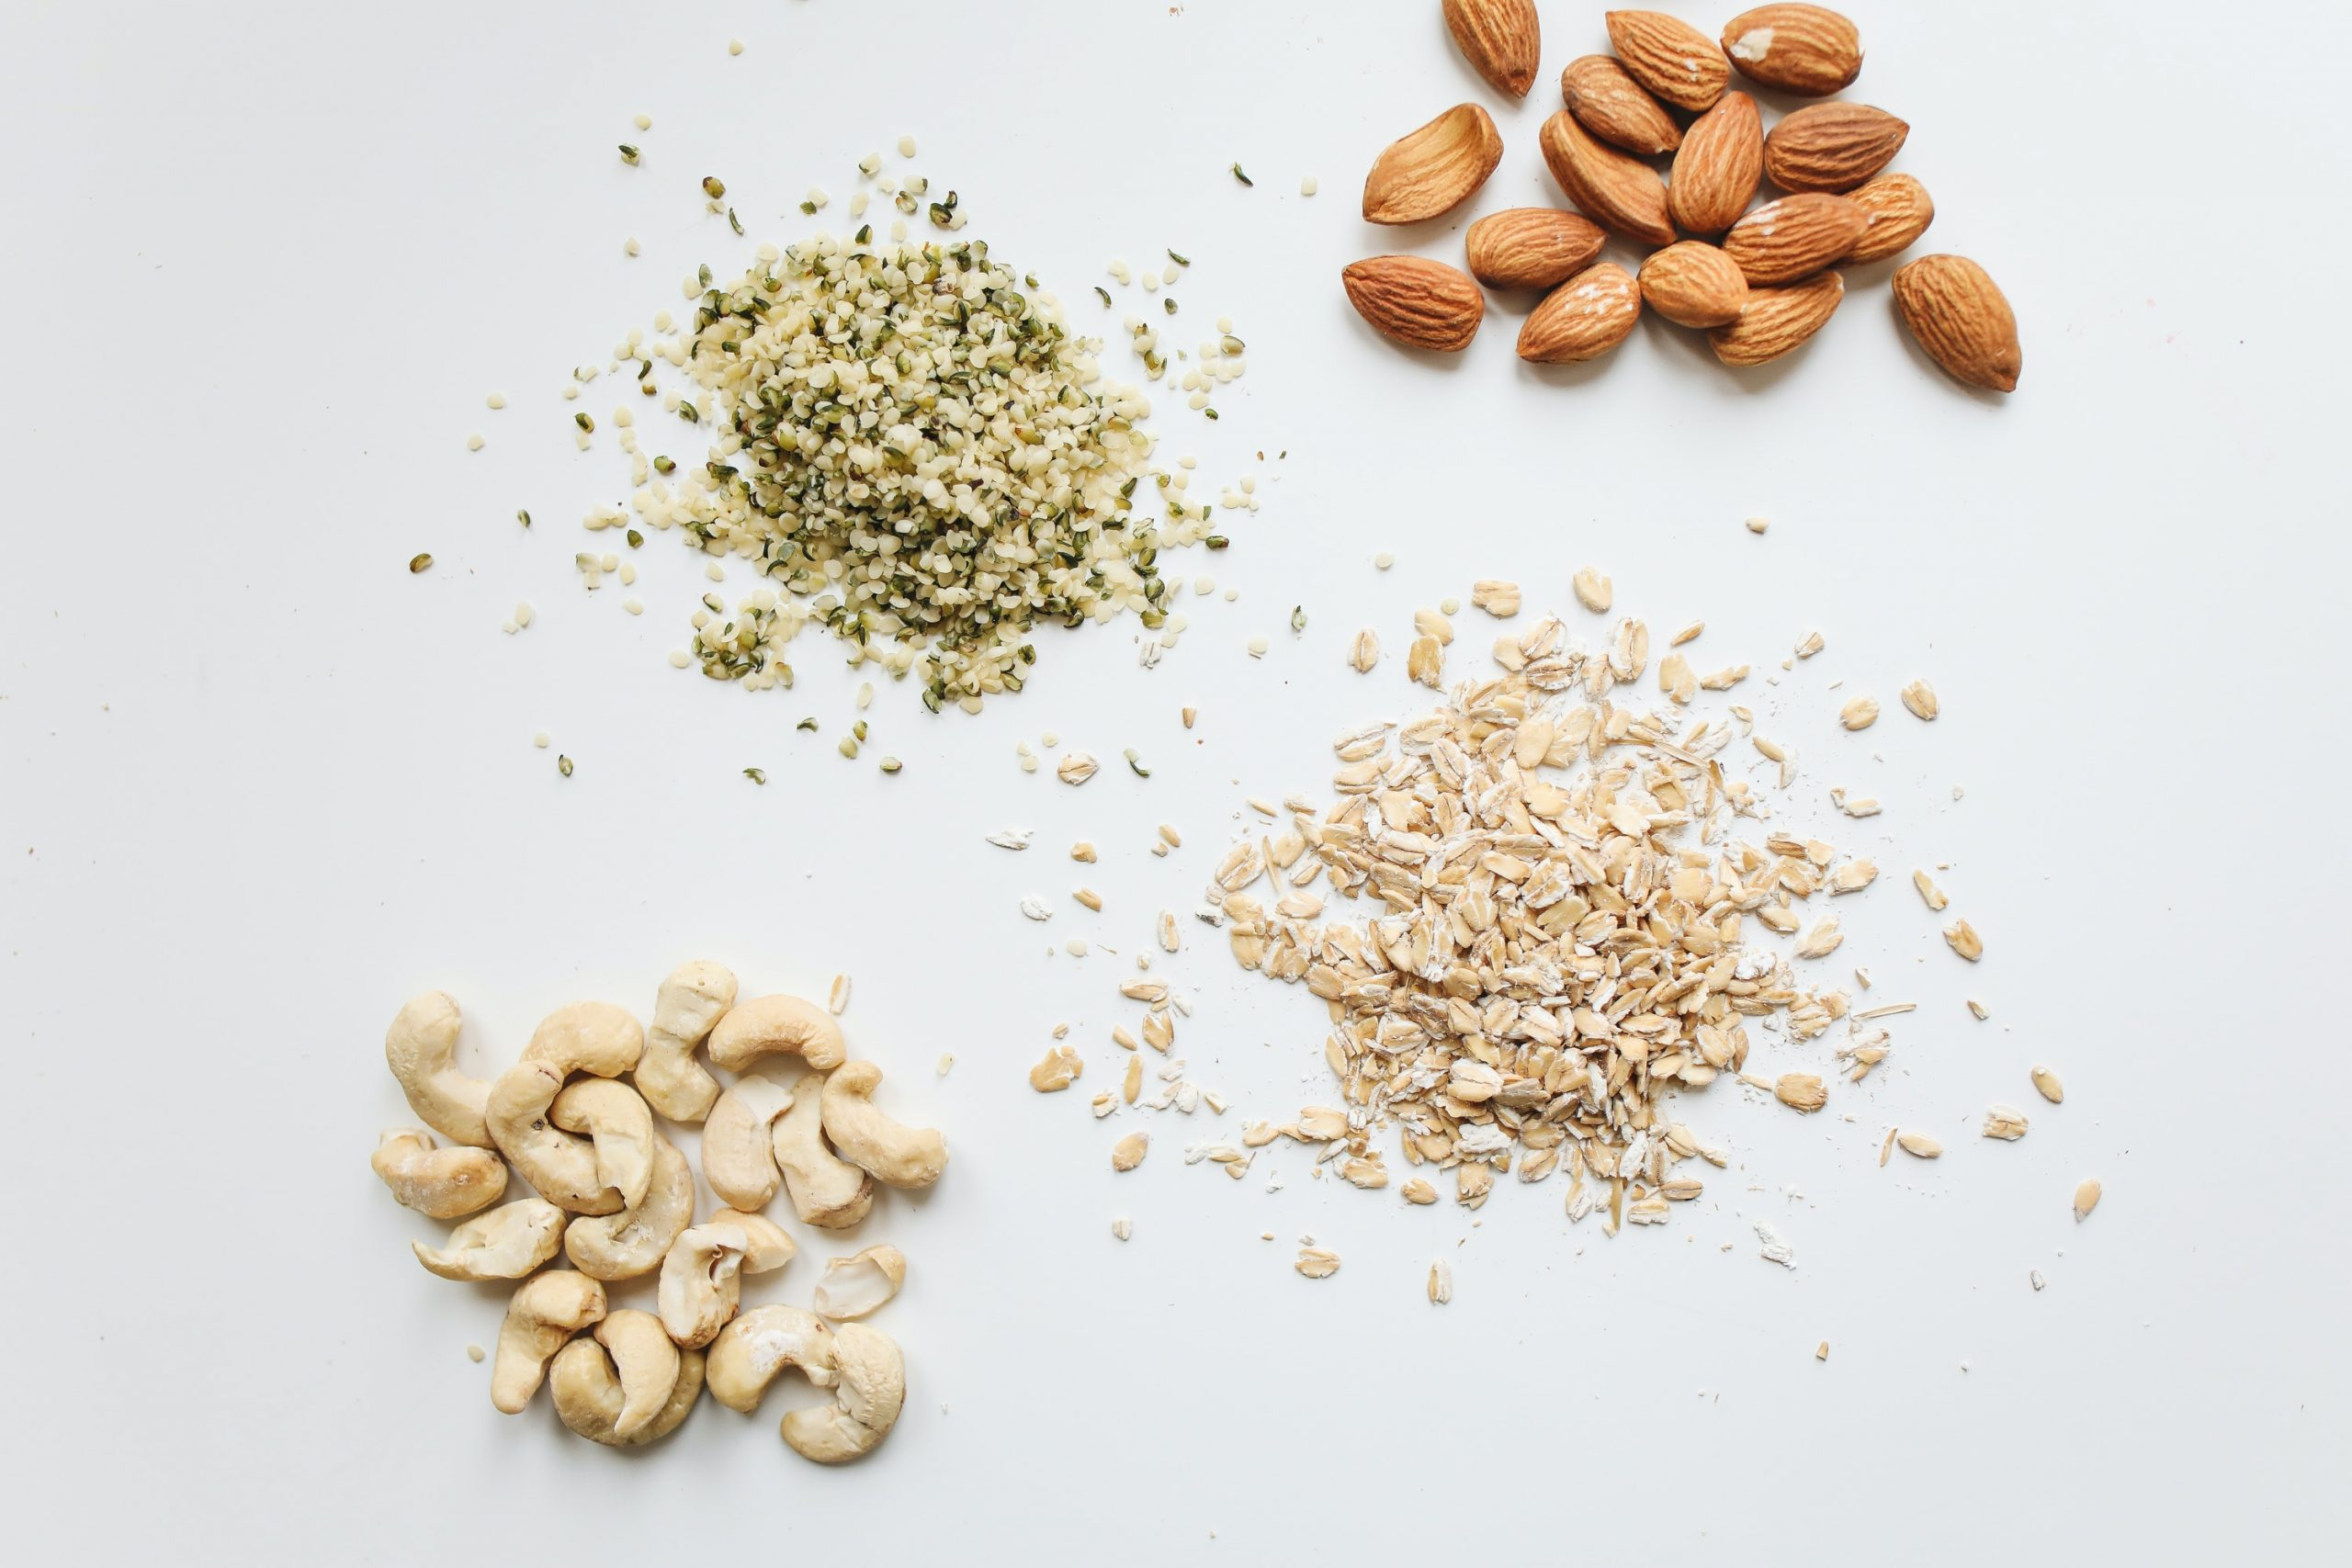 Oats, nuts, and seeds